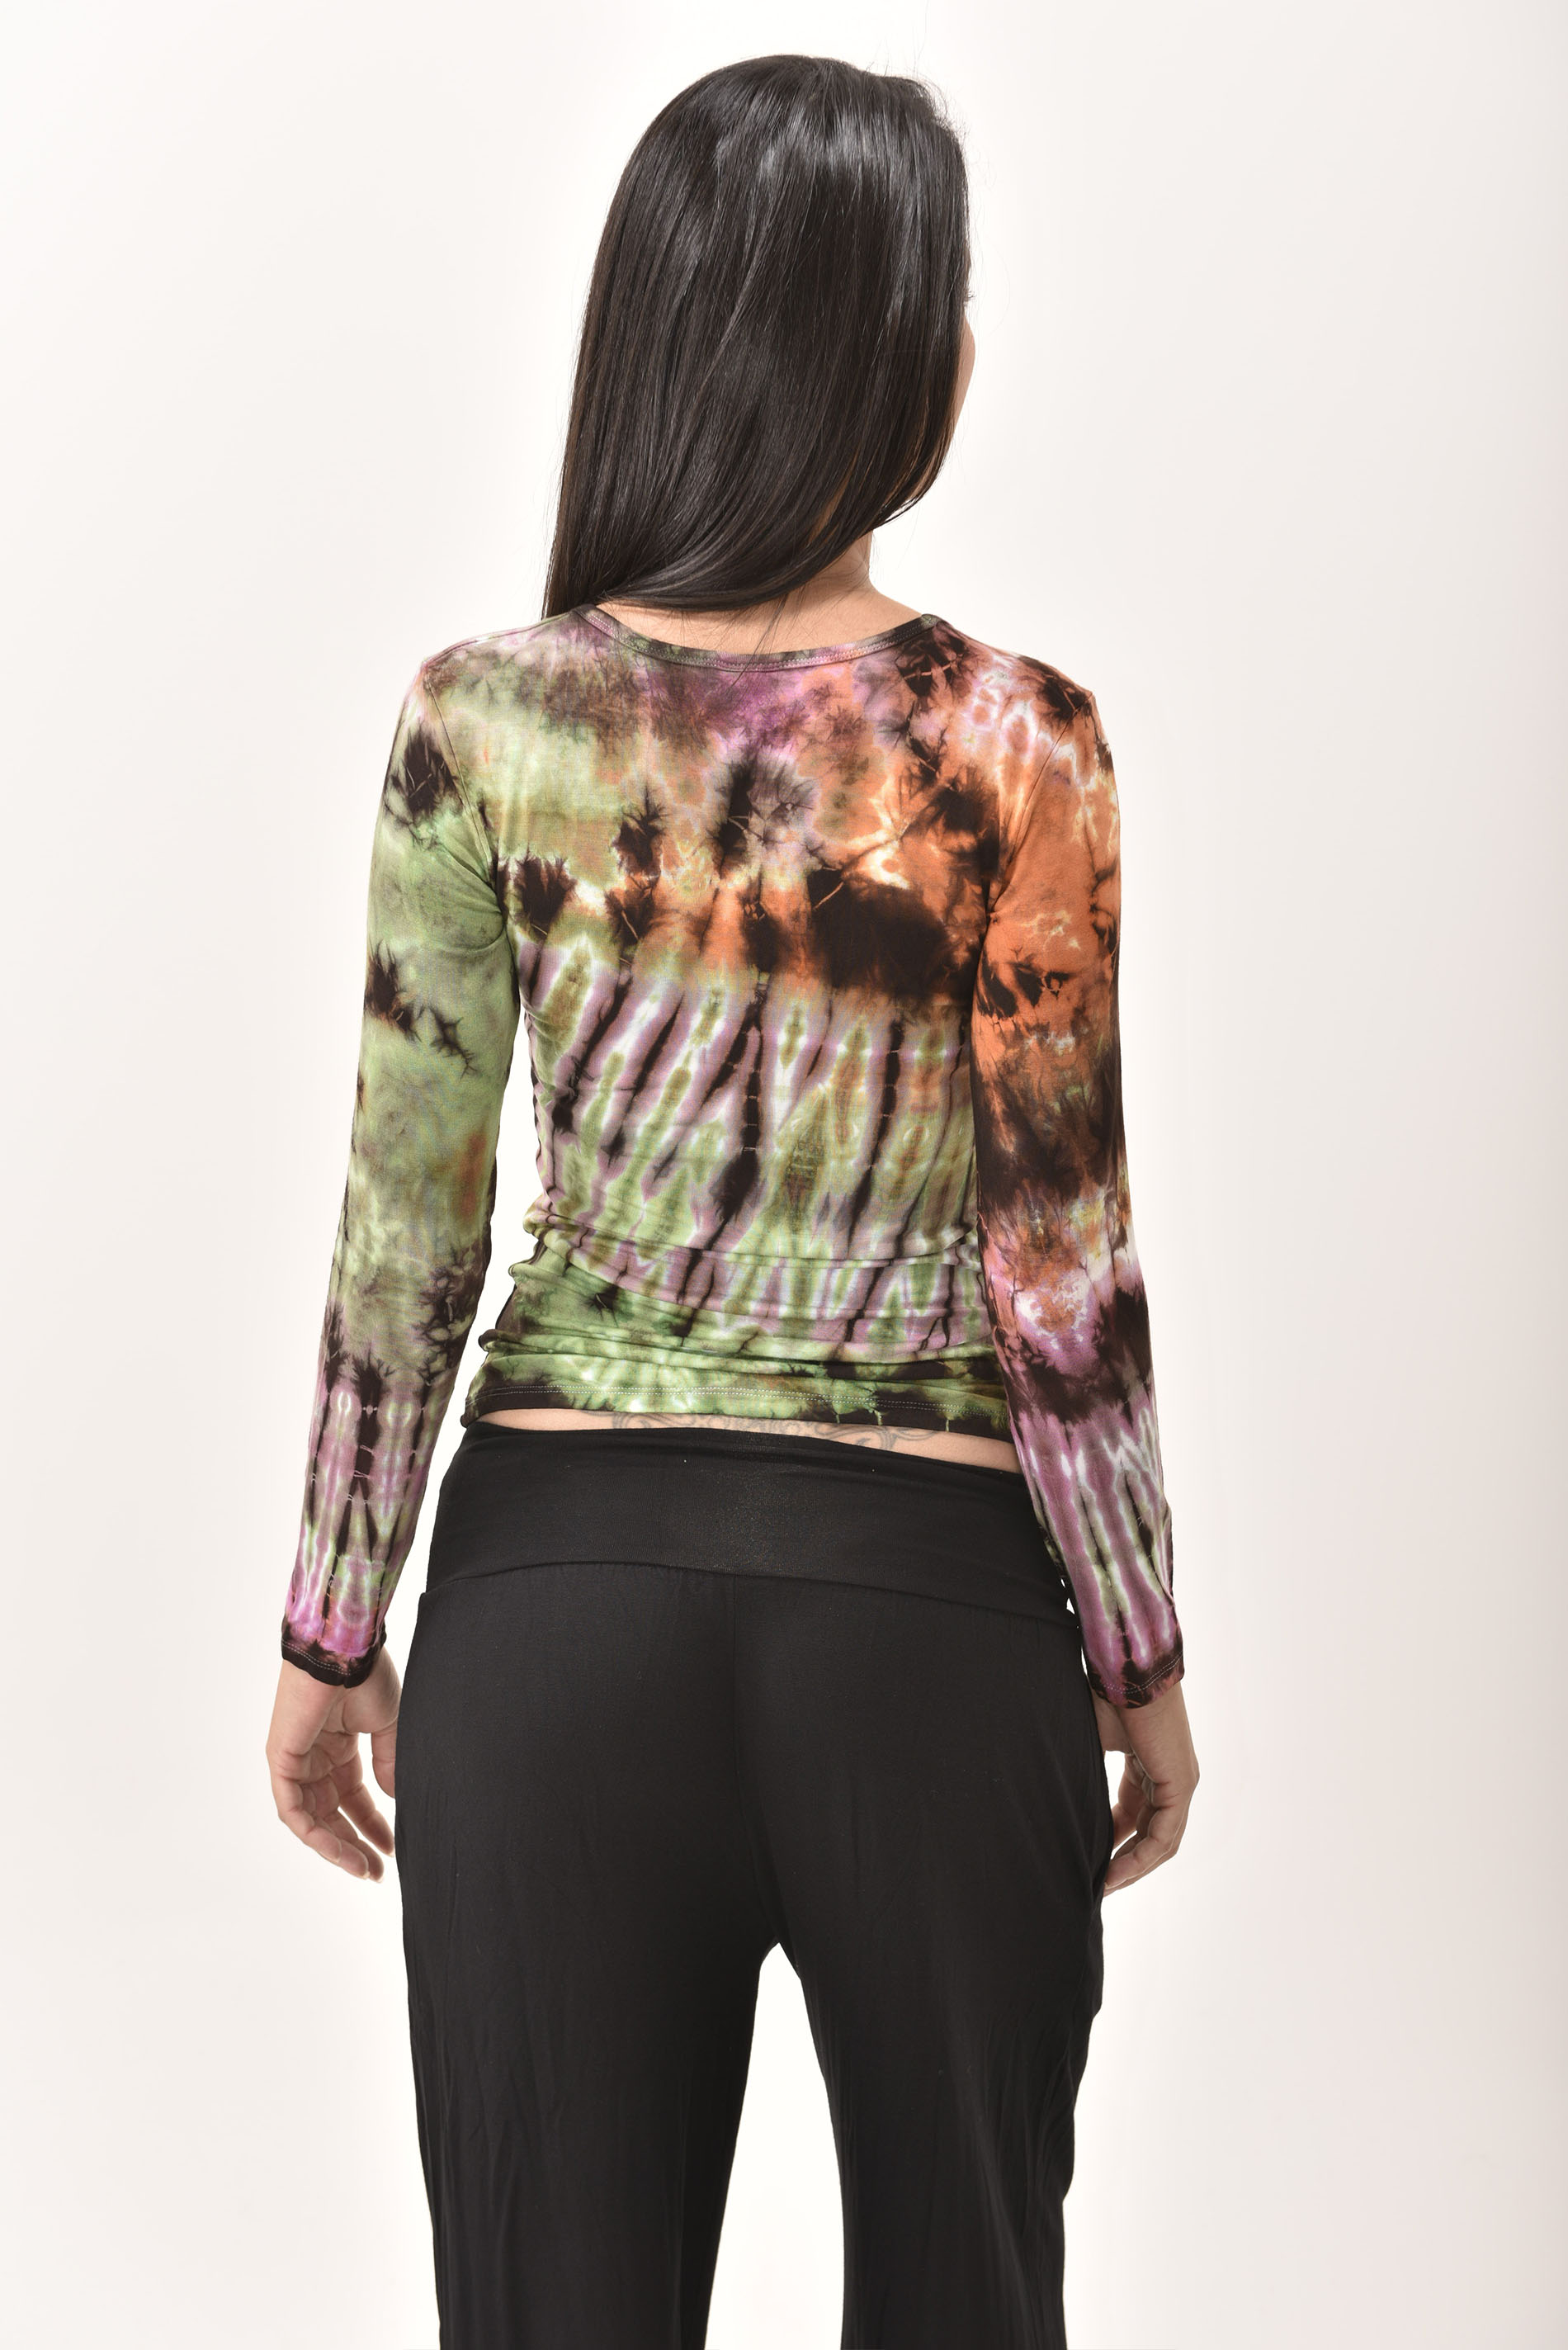 Long Sleeve Tee Hand Painted Tie Dye, Everything Multi